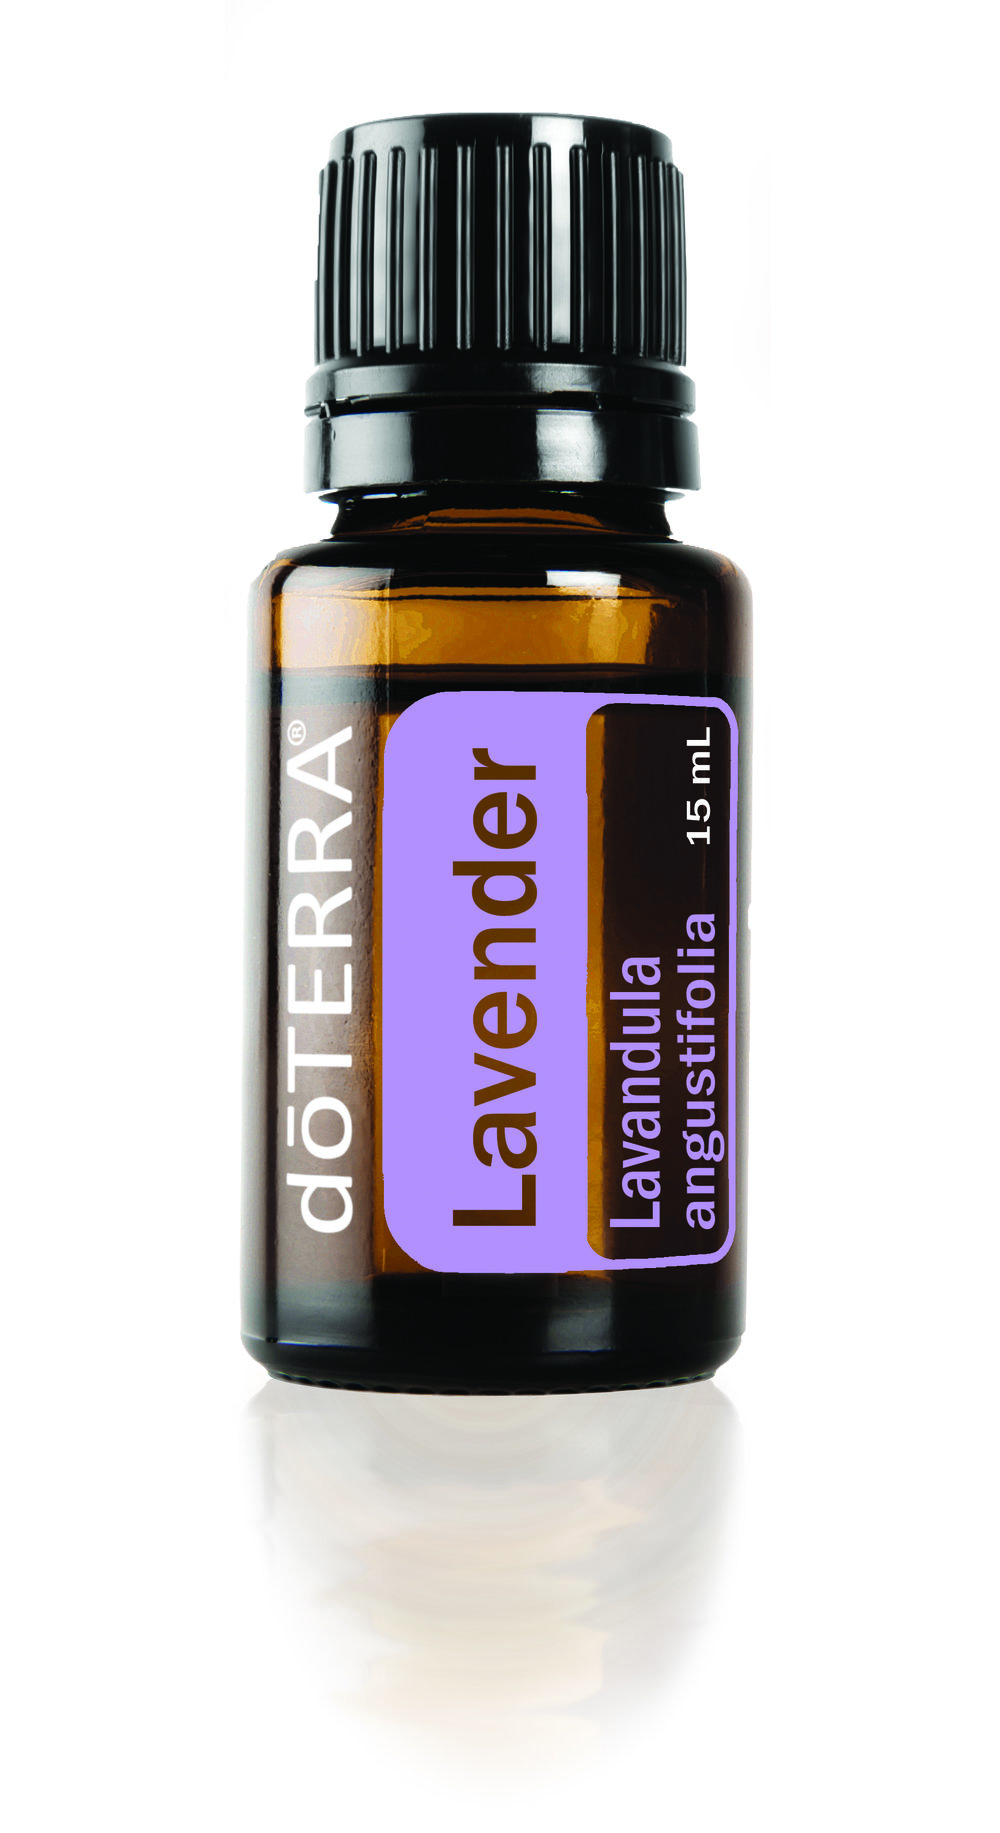 Calm - 2. Lavender Produces calming, soothing and relaxing benefits to relieve anxiety & tension